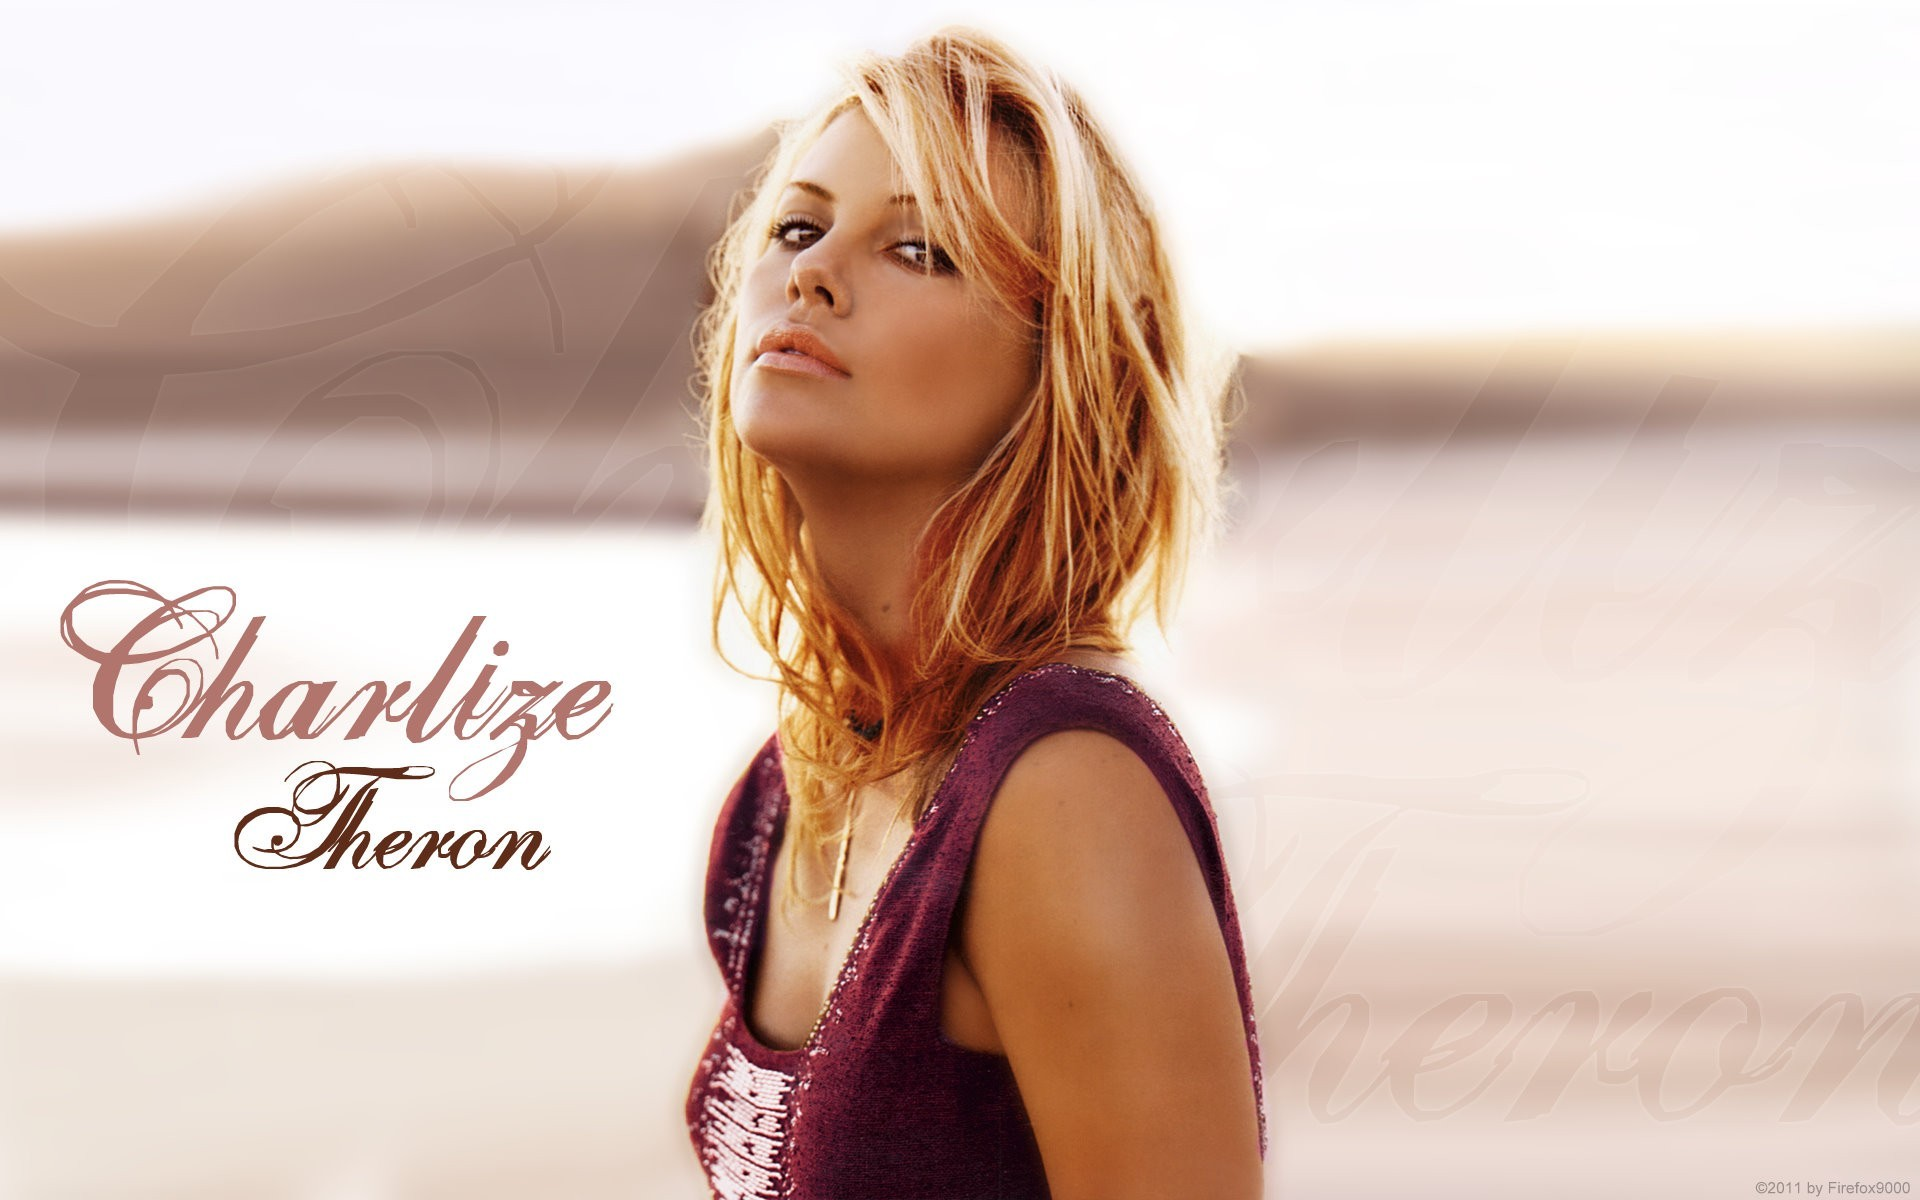 blondes woman charlize theron HD Wallpaper